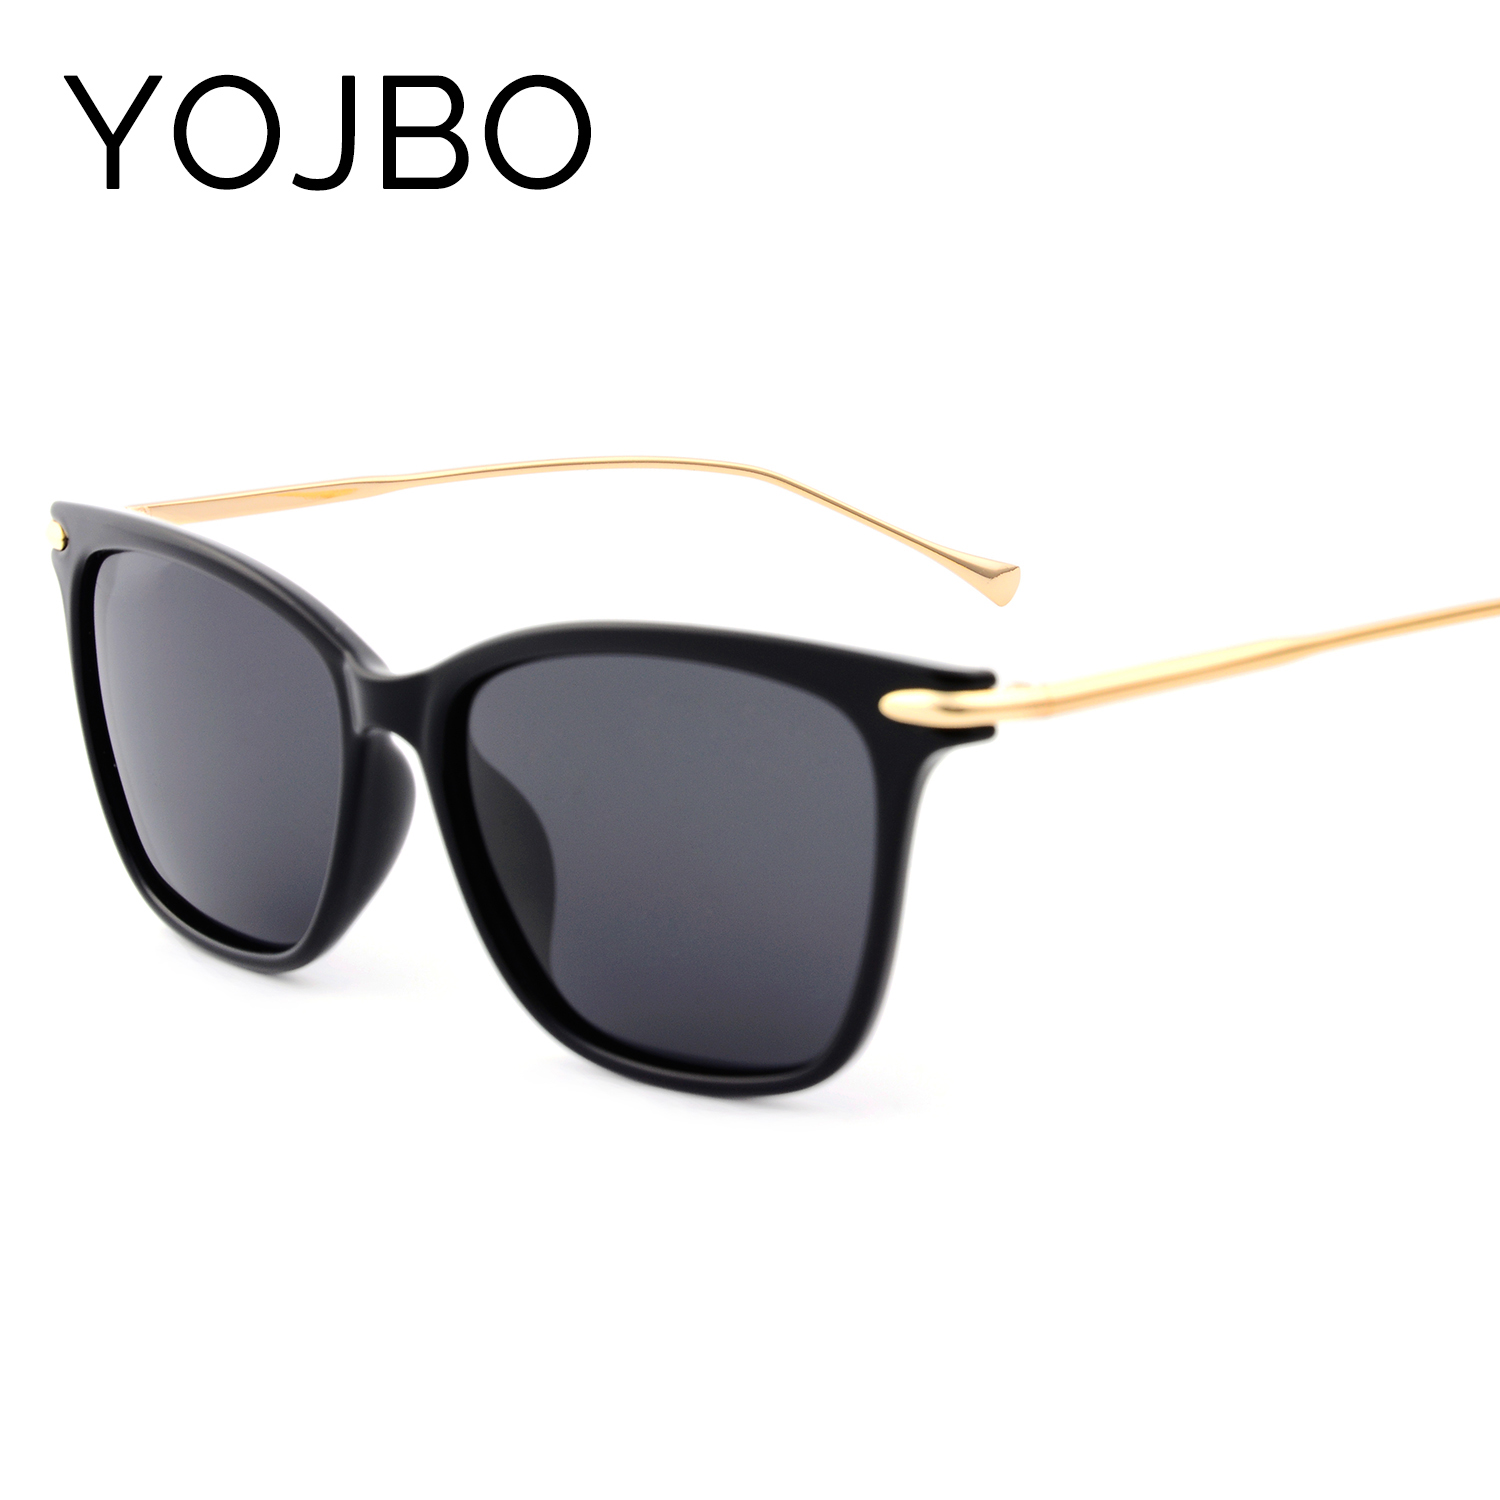 YOJBO New Styles Polarized Women Sunglasses 2018 Fashion Retro Mirror Men Vintage Brand Designer Clear Sun Glasses